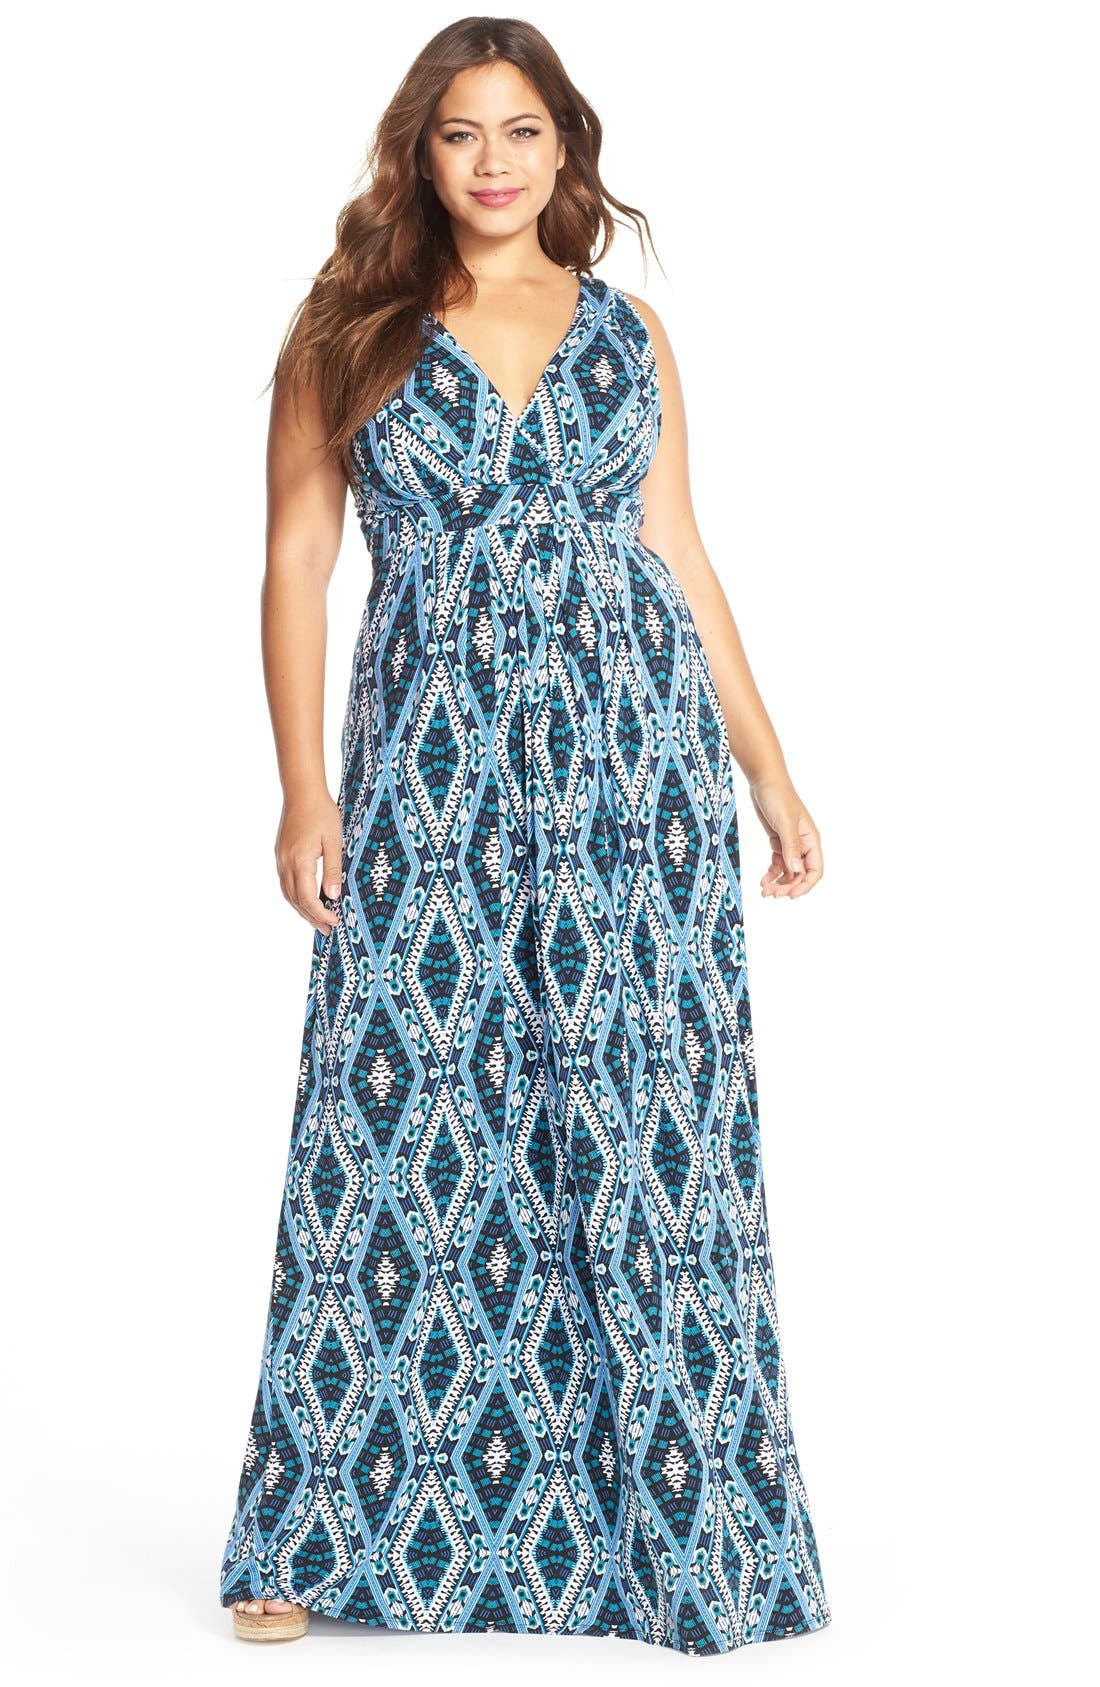 Chloe Empire Waist Maxi Dress,                             Main thumbnail 11, color,